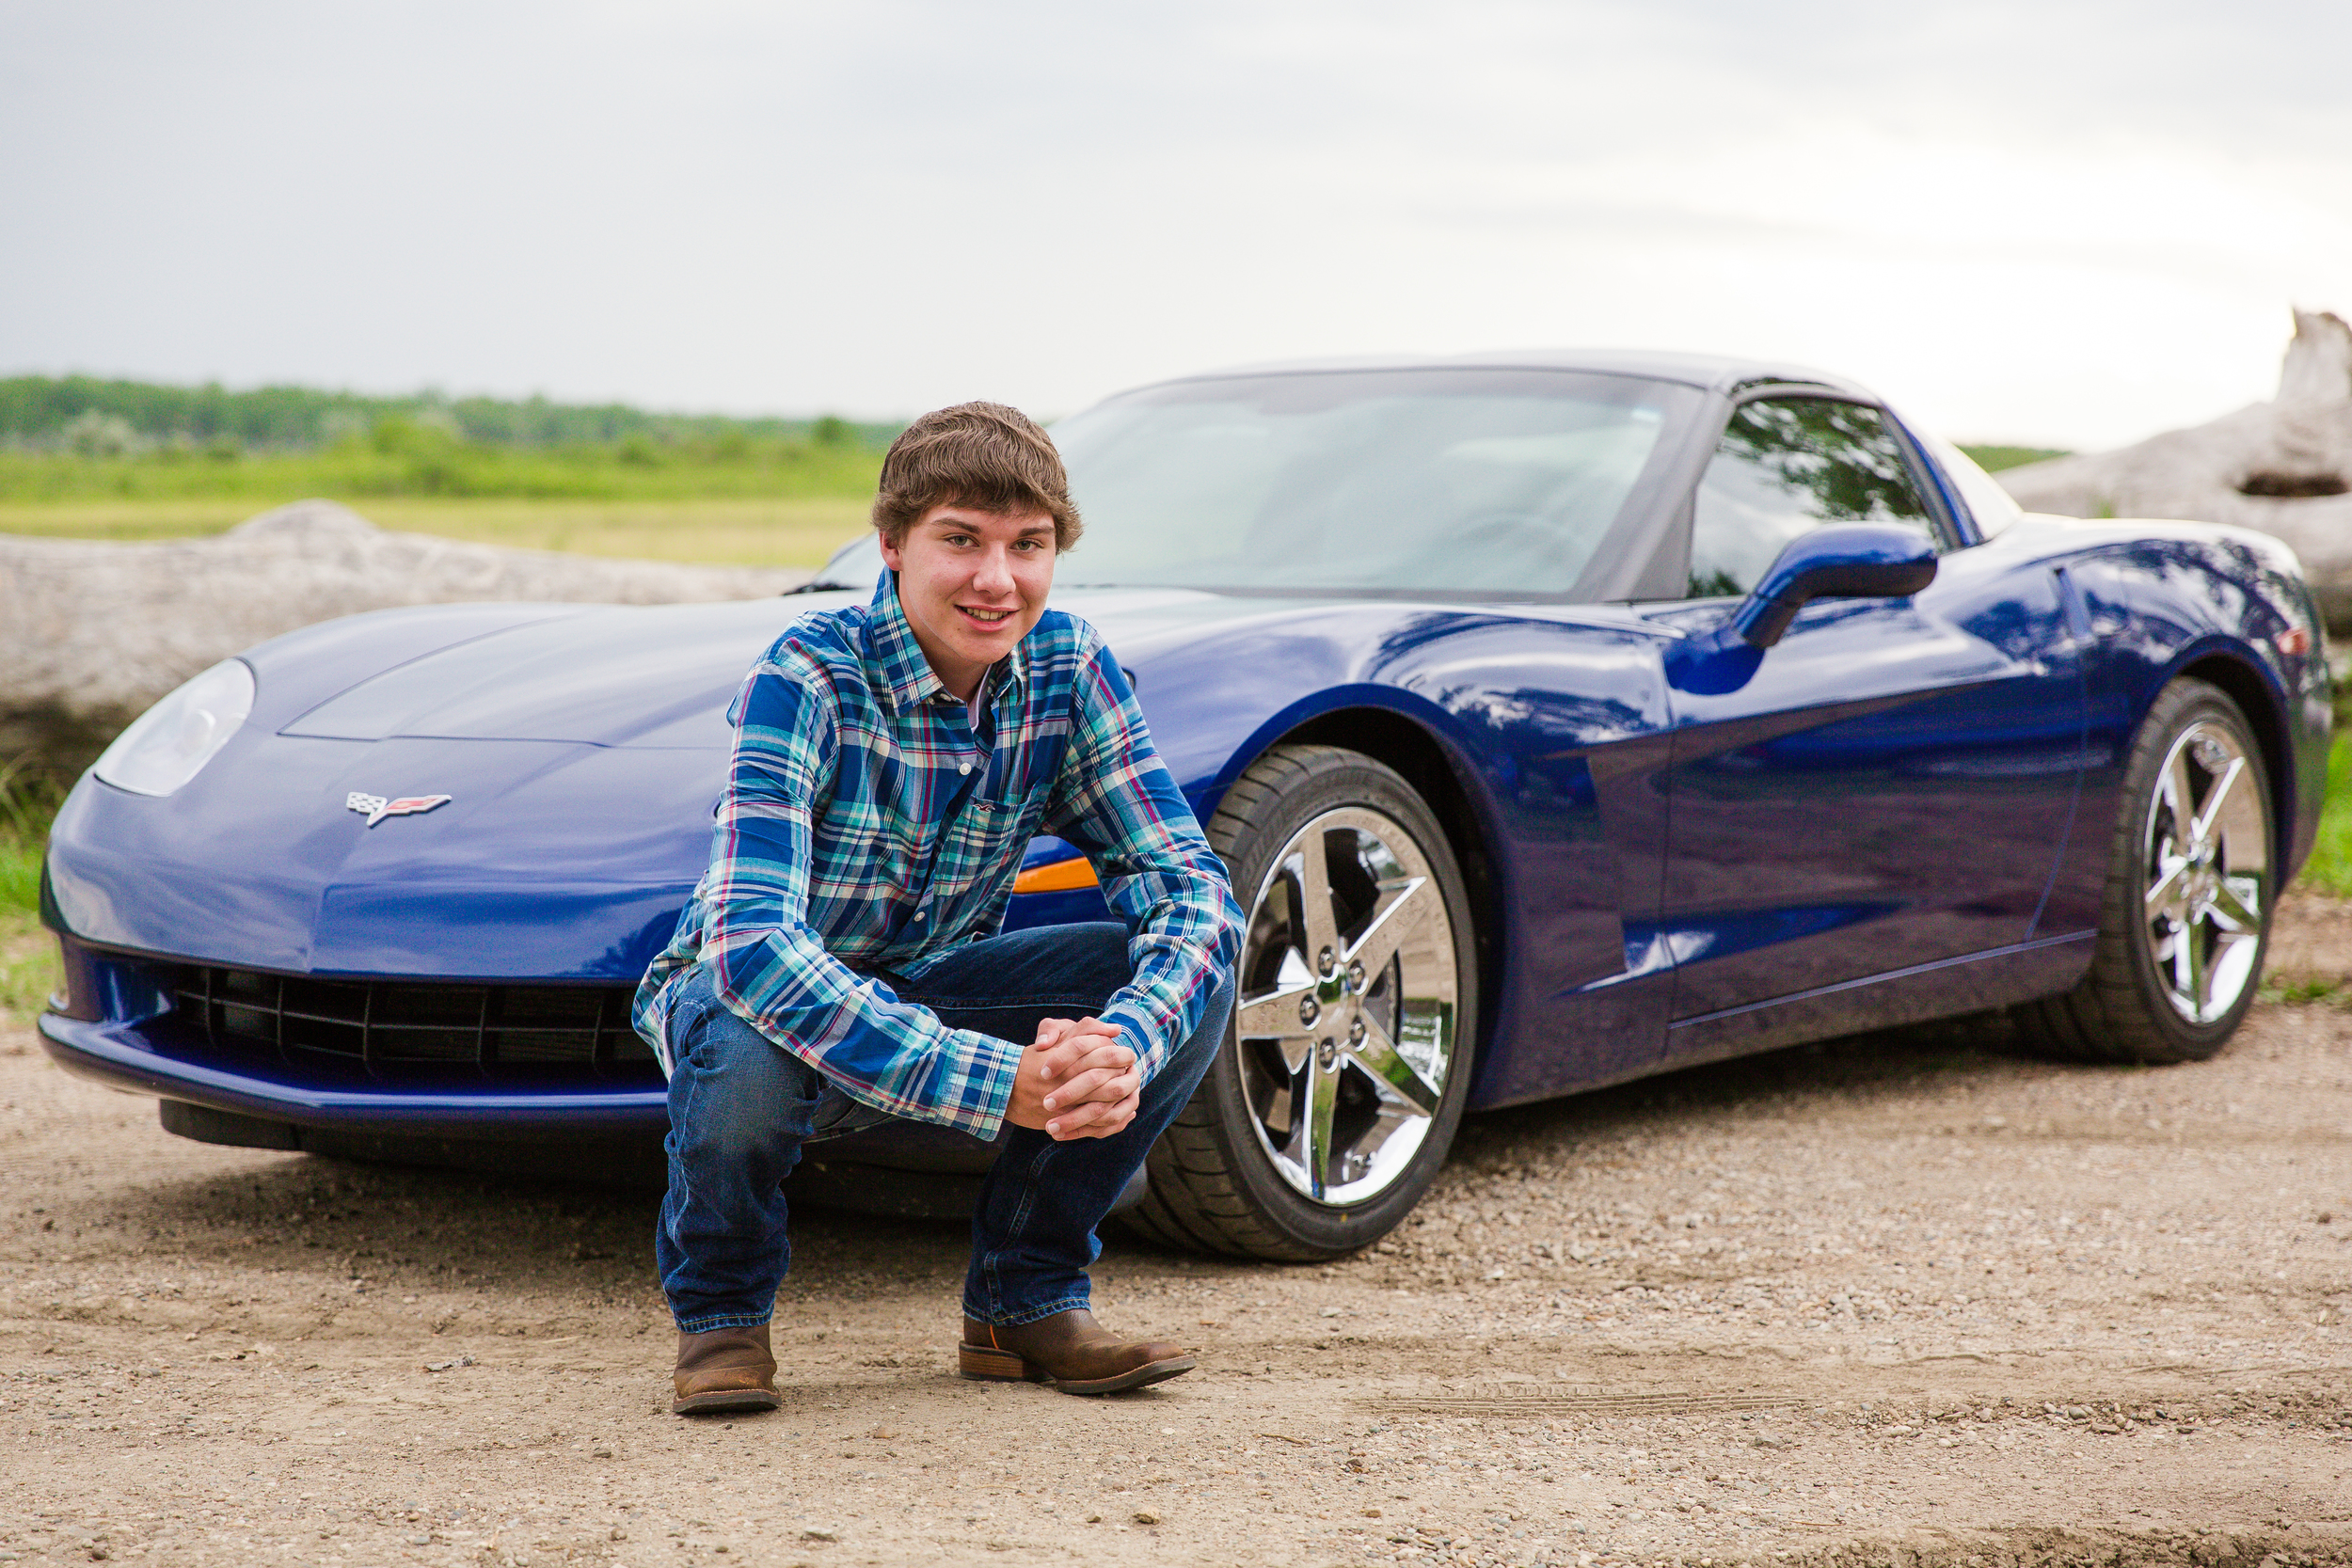 Chase is the definition of Fast Cars and Freedom. We started his session in front of this beautiful blue Chevy Corvette and ended it next to his Chevy Pick-up parked along a country field. Chase will be graduating from Mandan High School and plans to become a Fire Fighter.